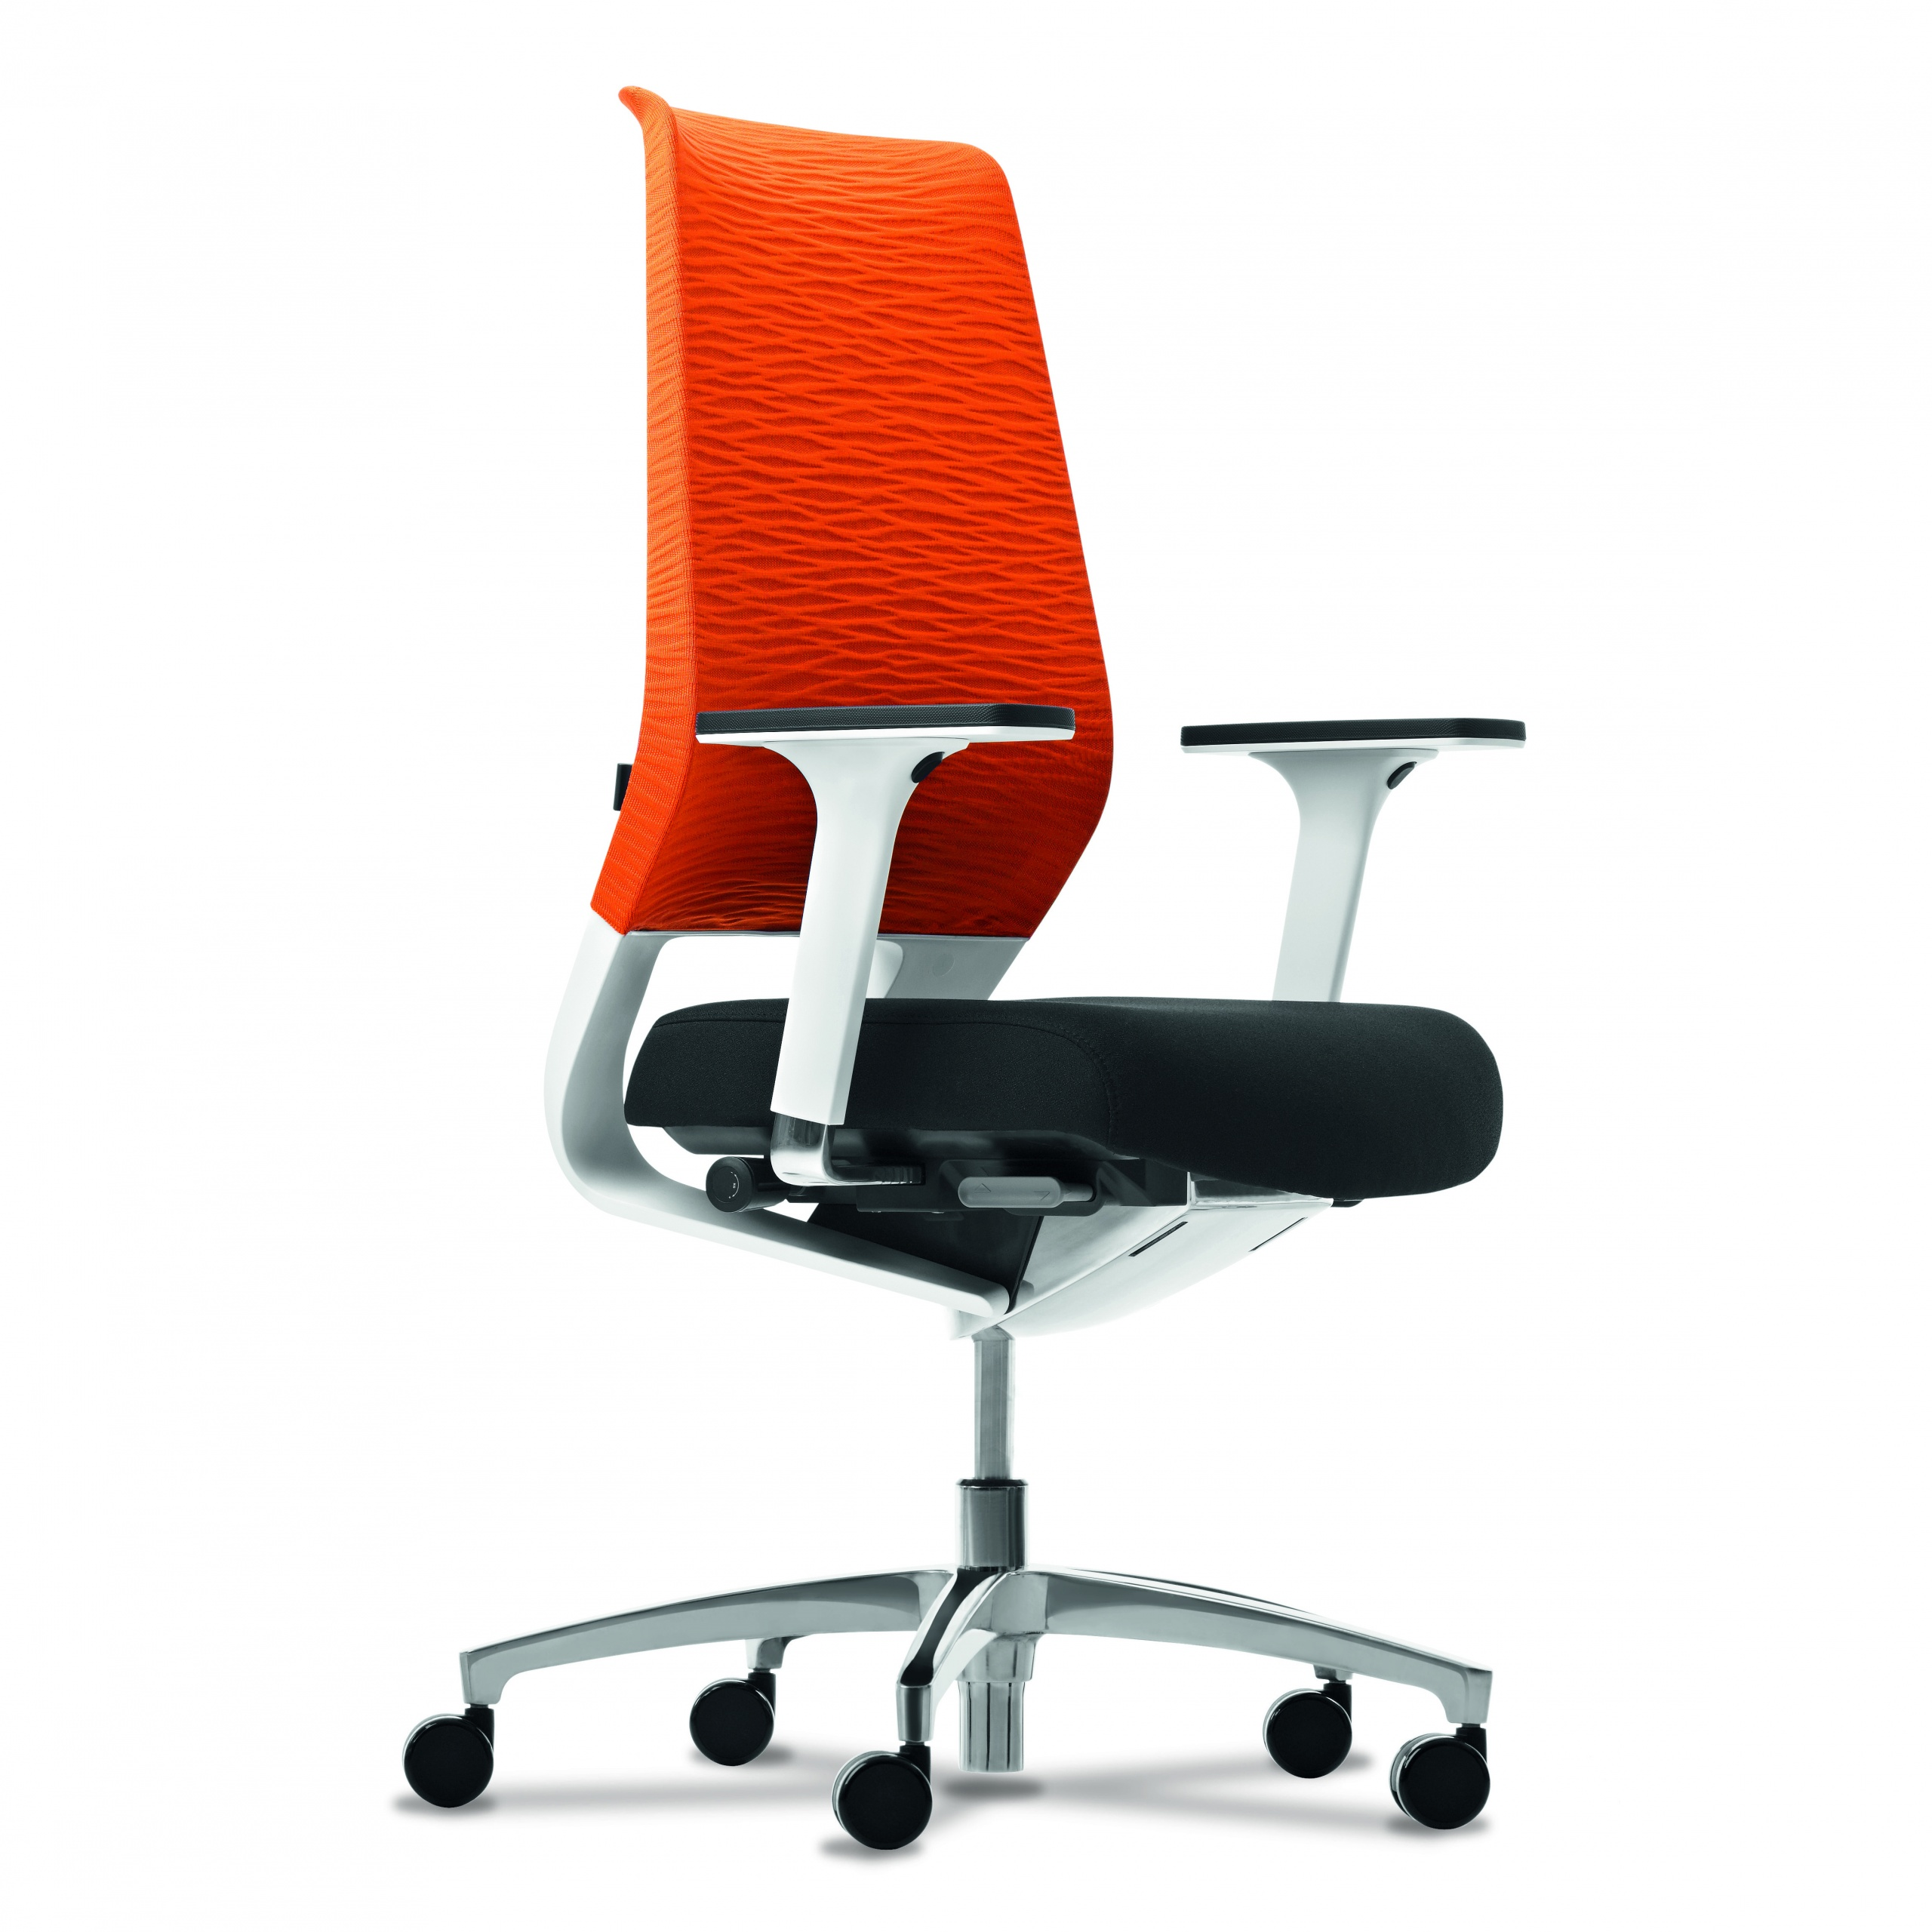 Dauphin Chairs Dauphin X Code Desk Office Chair Furniture Solutions Now